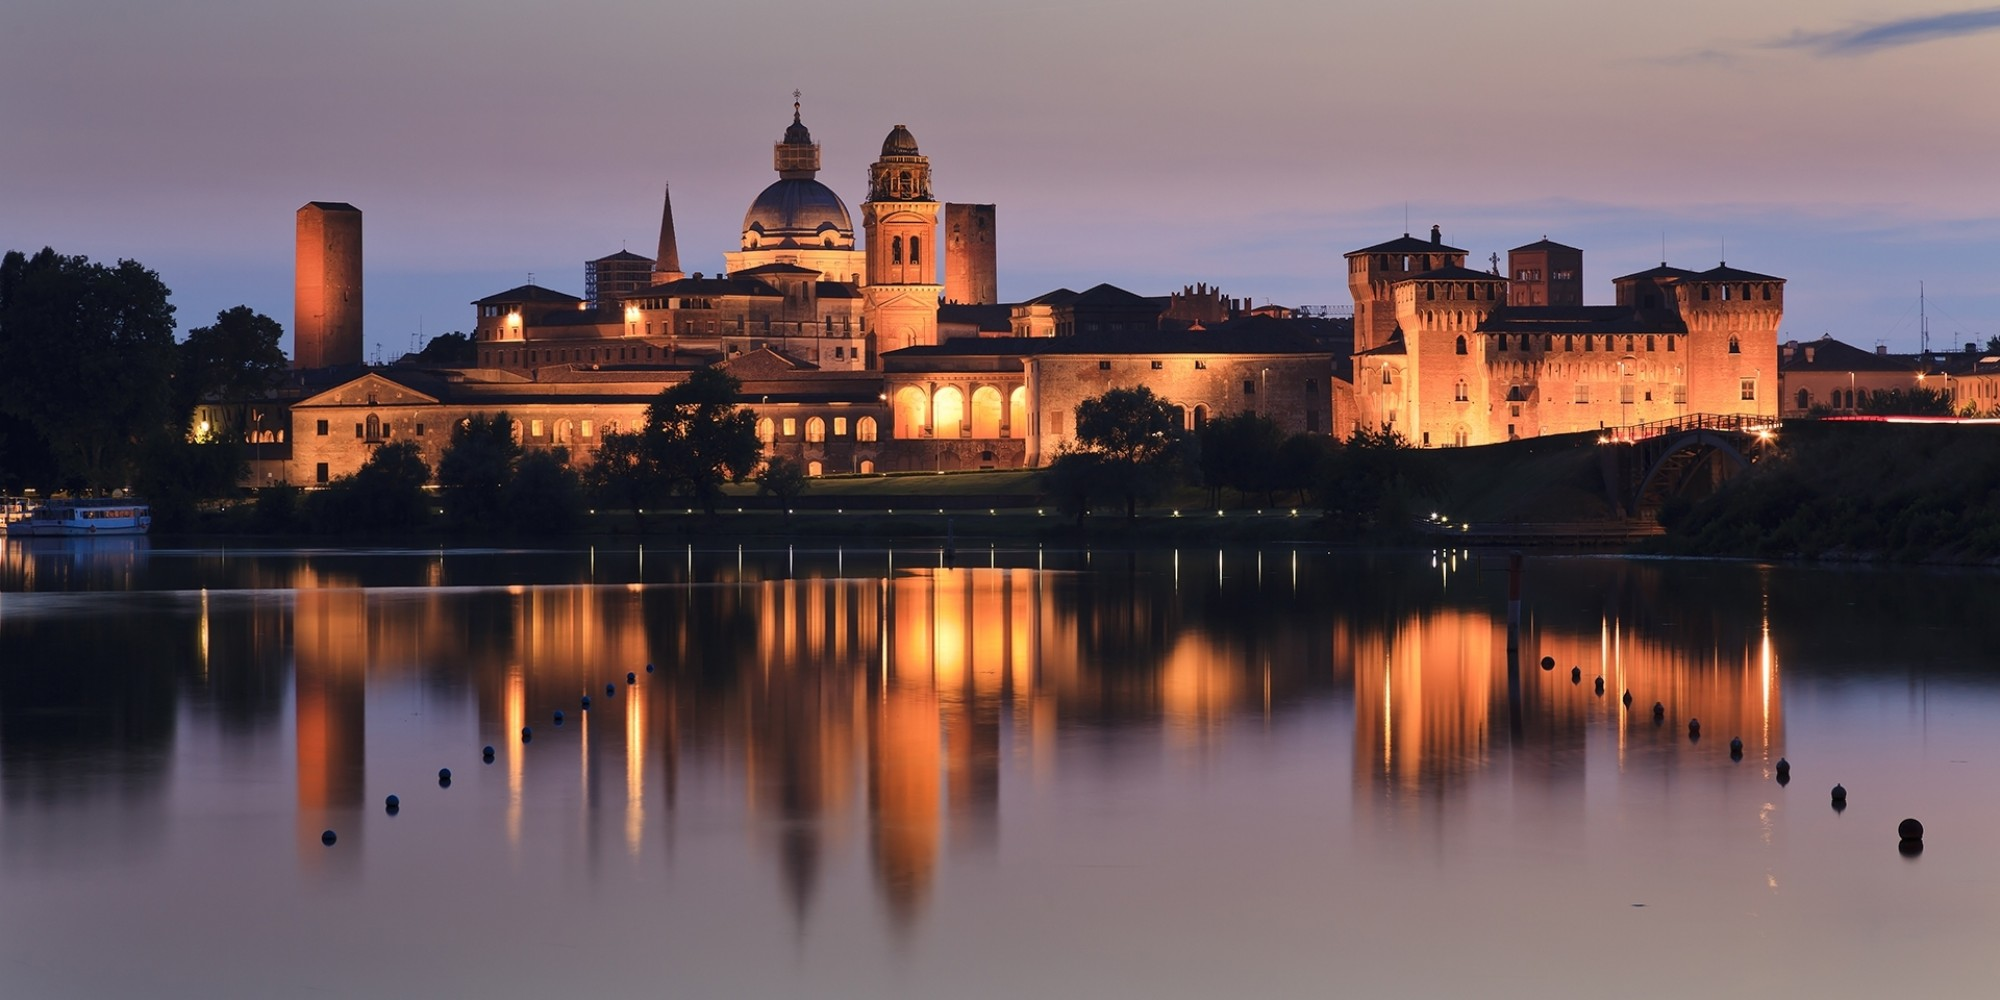 Italy mantua duke palace and castle panoramic view at sunset mantova